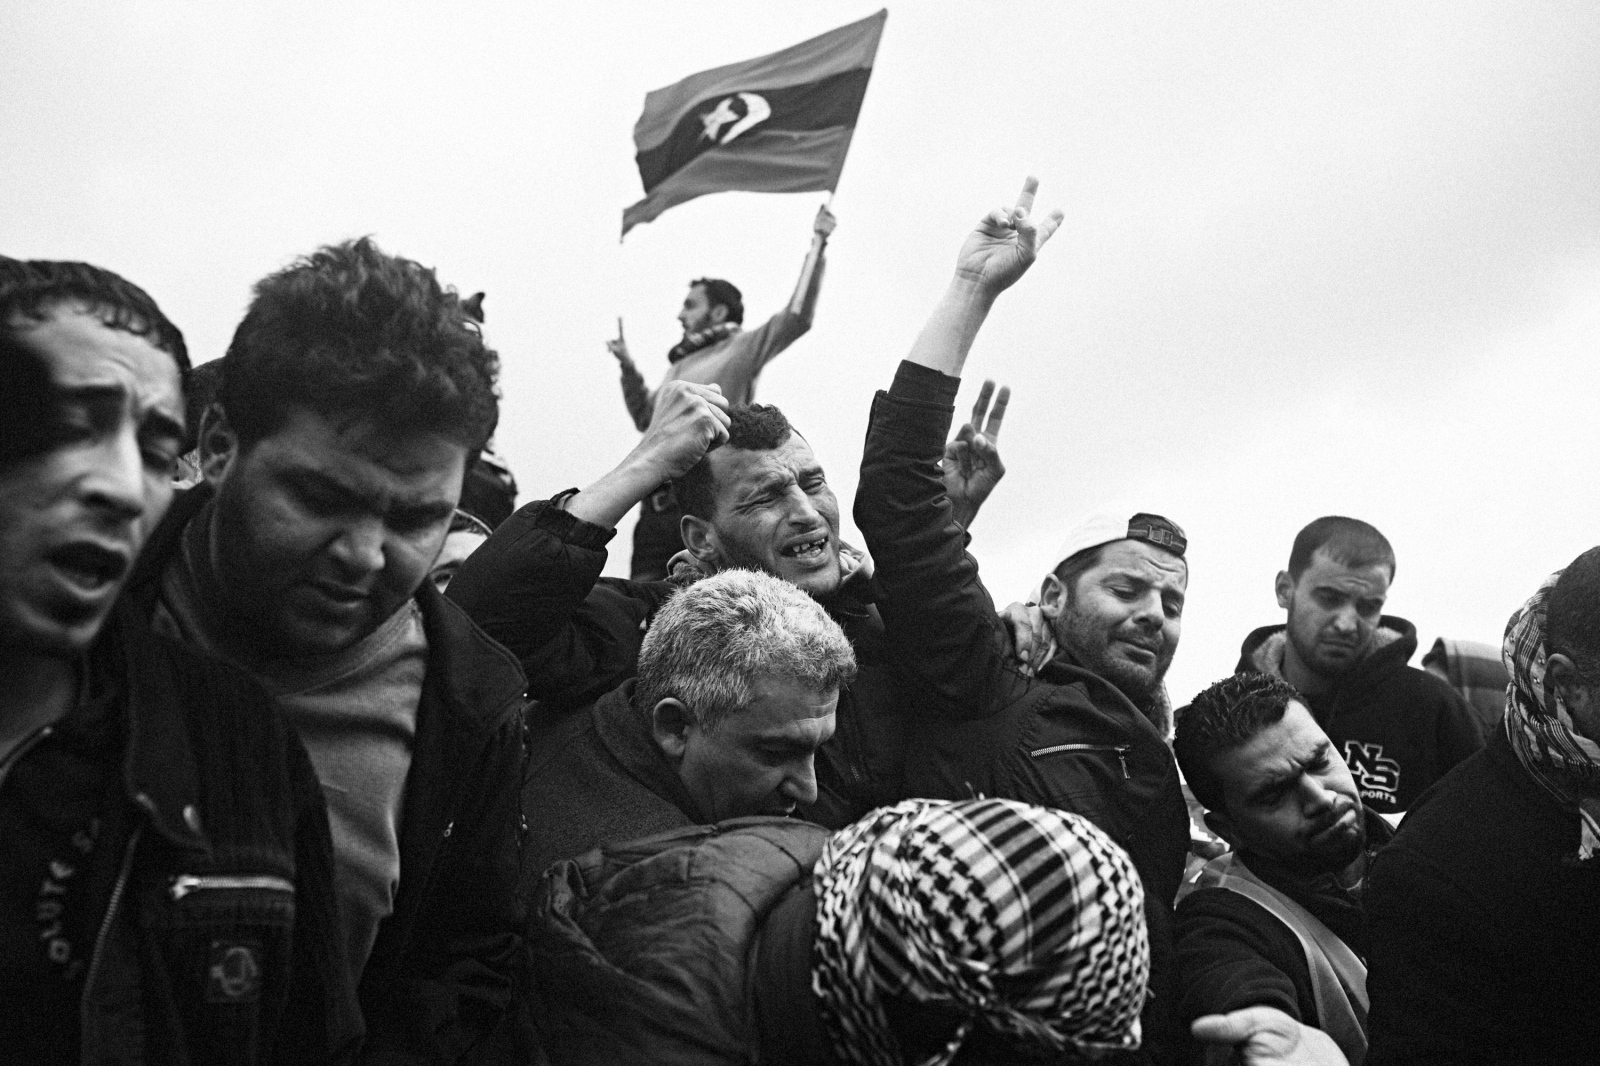 Men weep at the funeral of a friend who succumbed to his injuries sustained during the first days of the Libyan Revolution, in Benghazi, Libya on February 25, 2011.